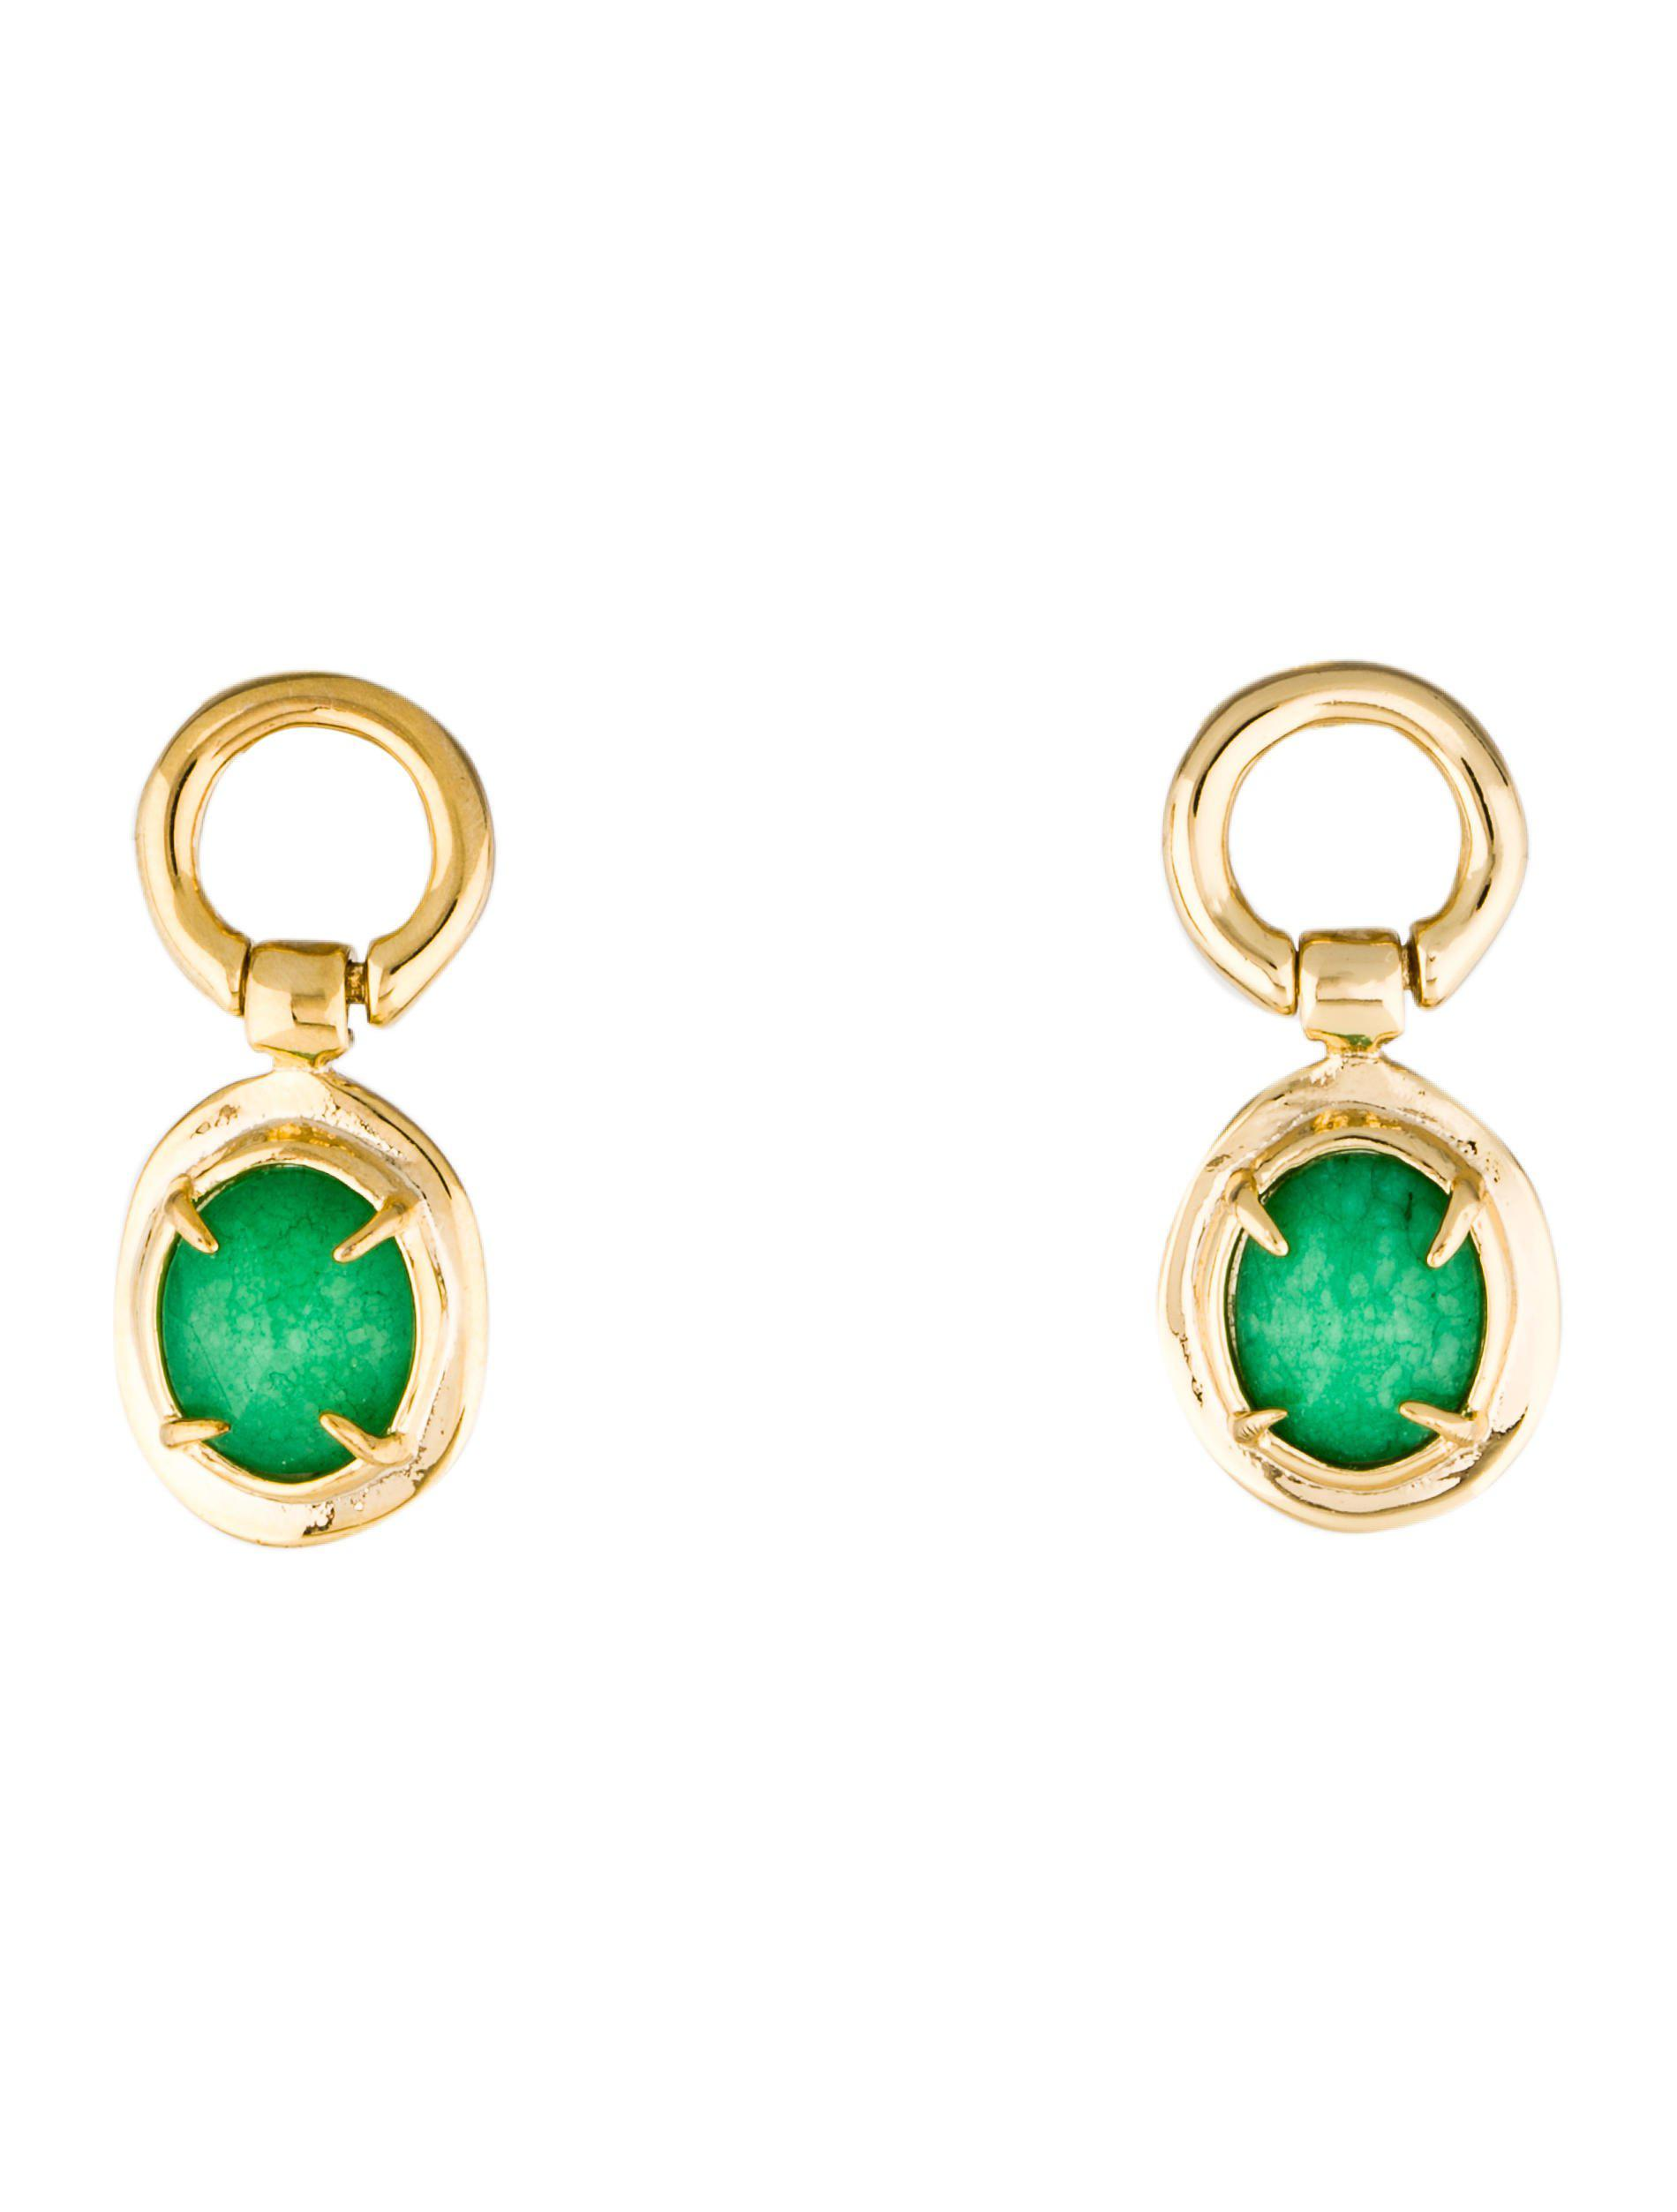 Lyst Alexis Bittar Swinging Stone Post Earrings Gold in Metallic